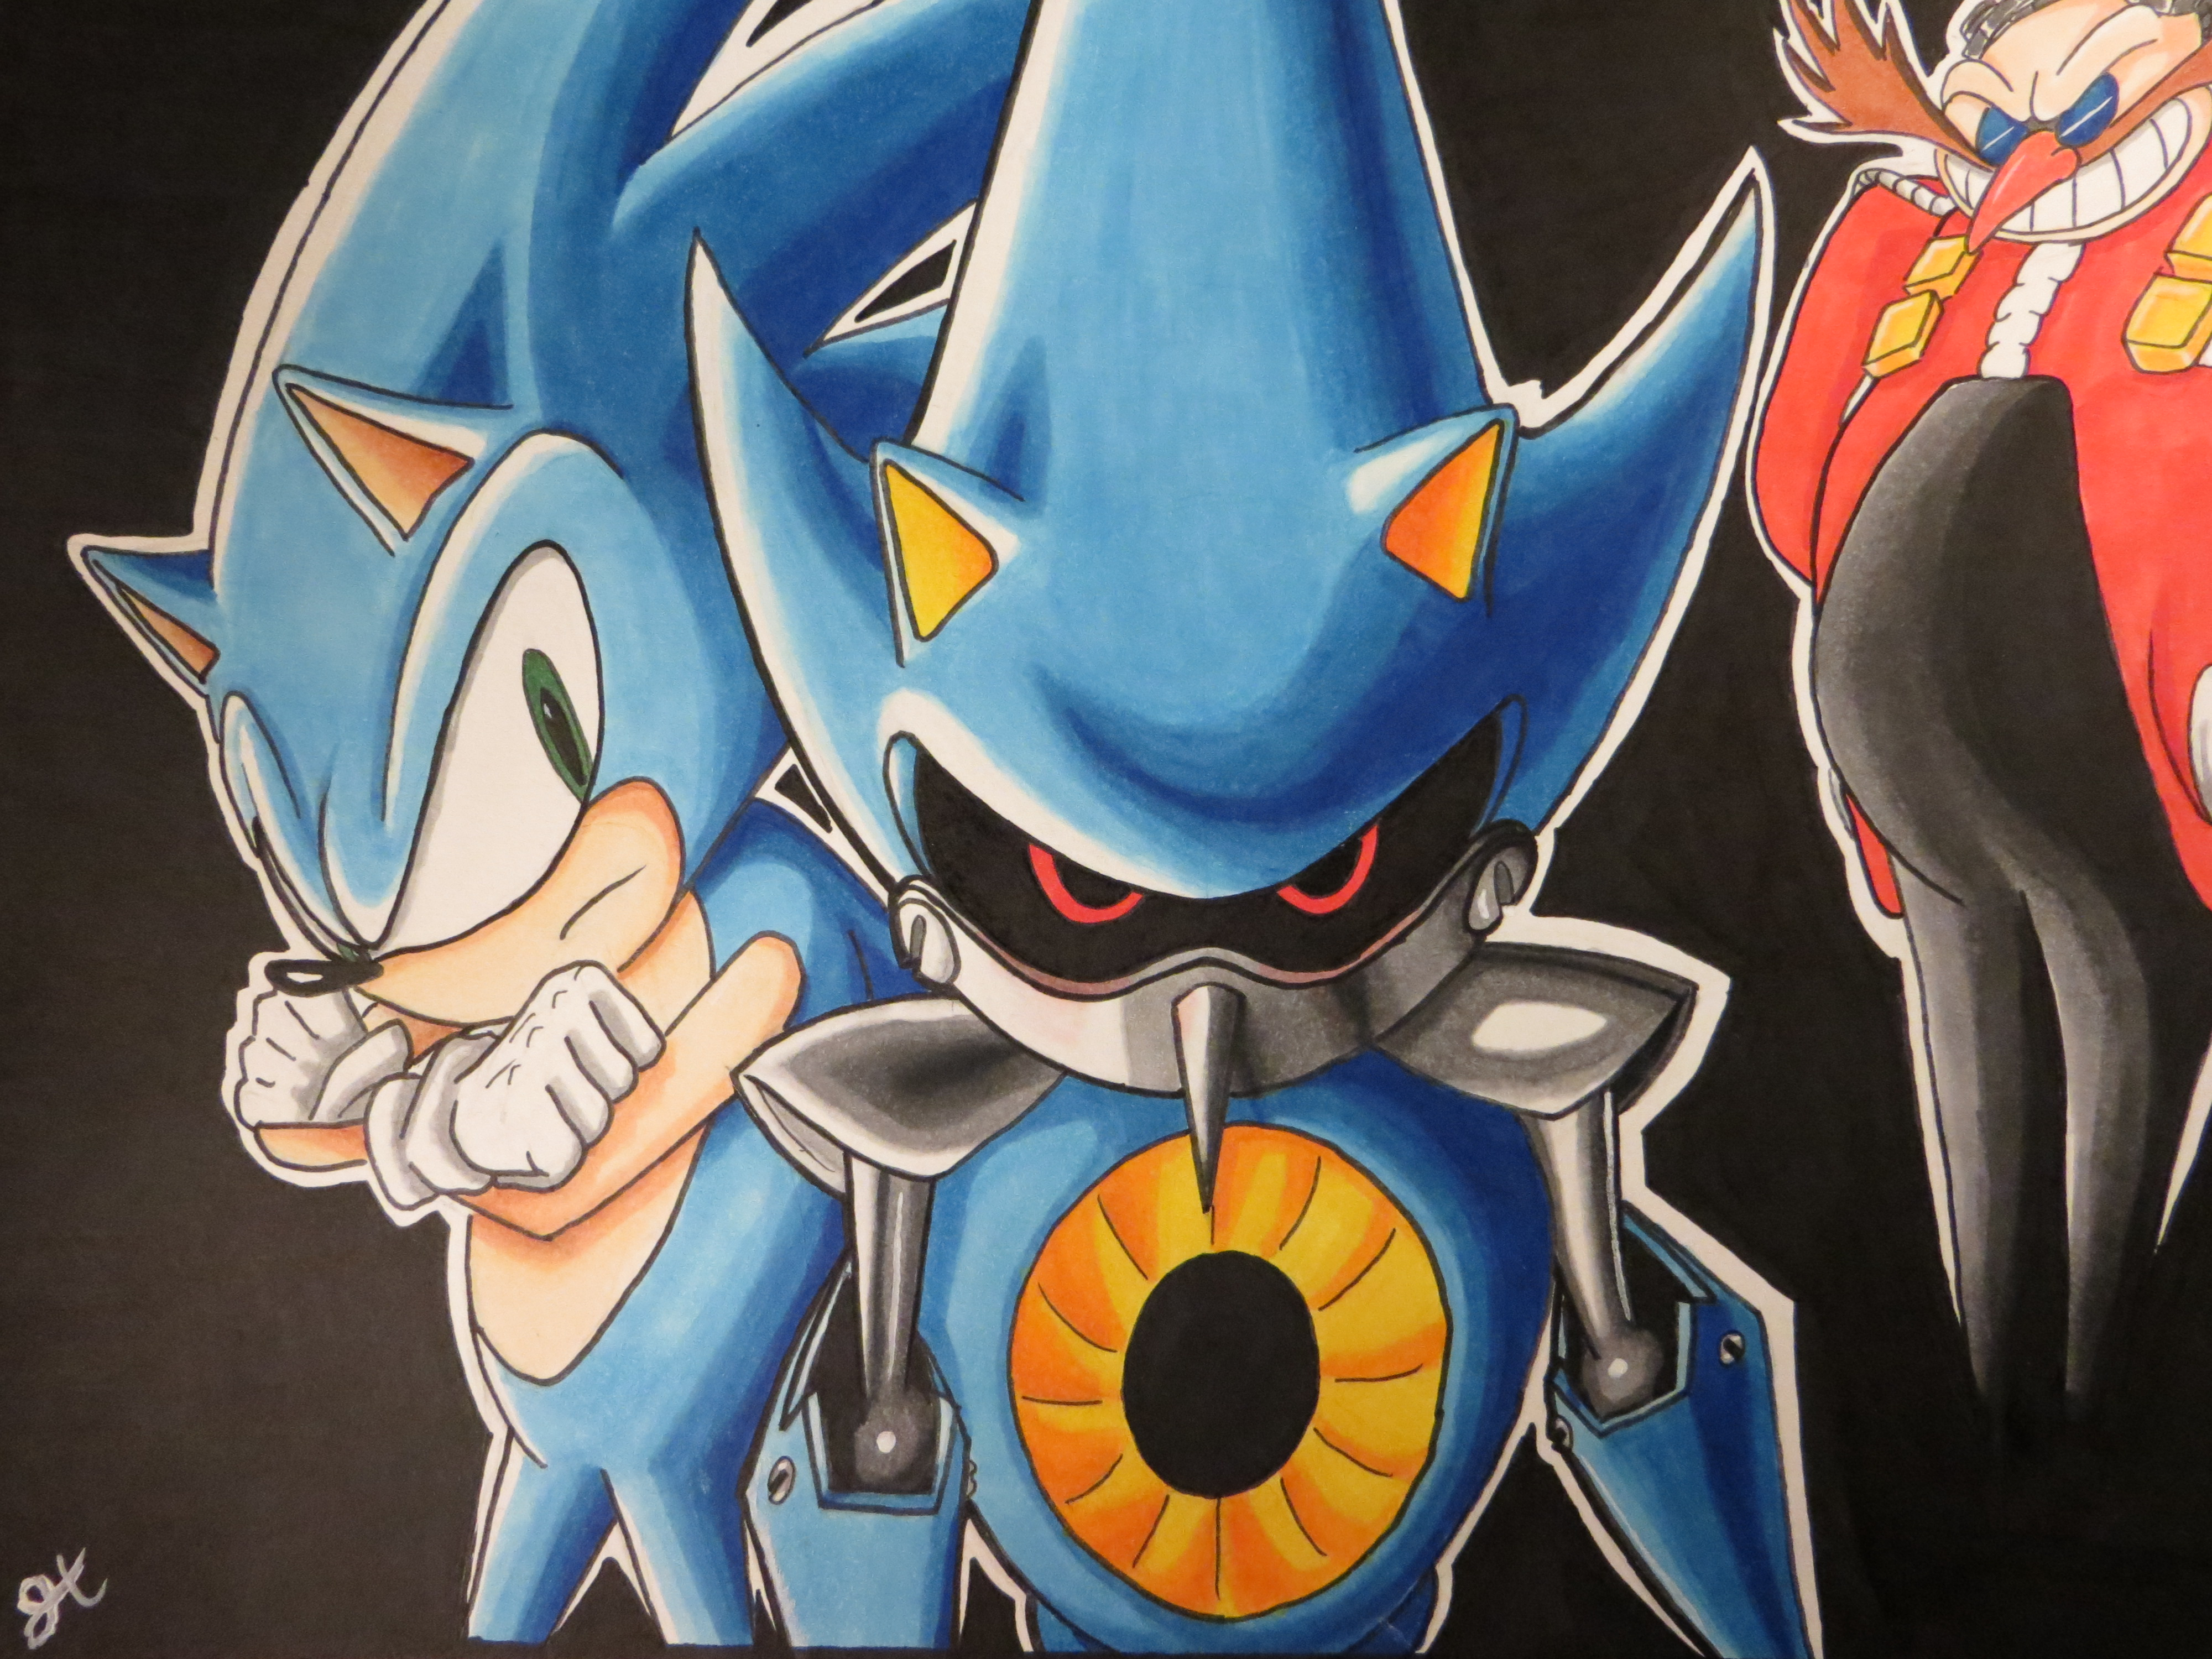 Metal Sonic Sonic The Hedgehog Original Game Art By Gladiatorgaming On Deviantart